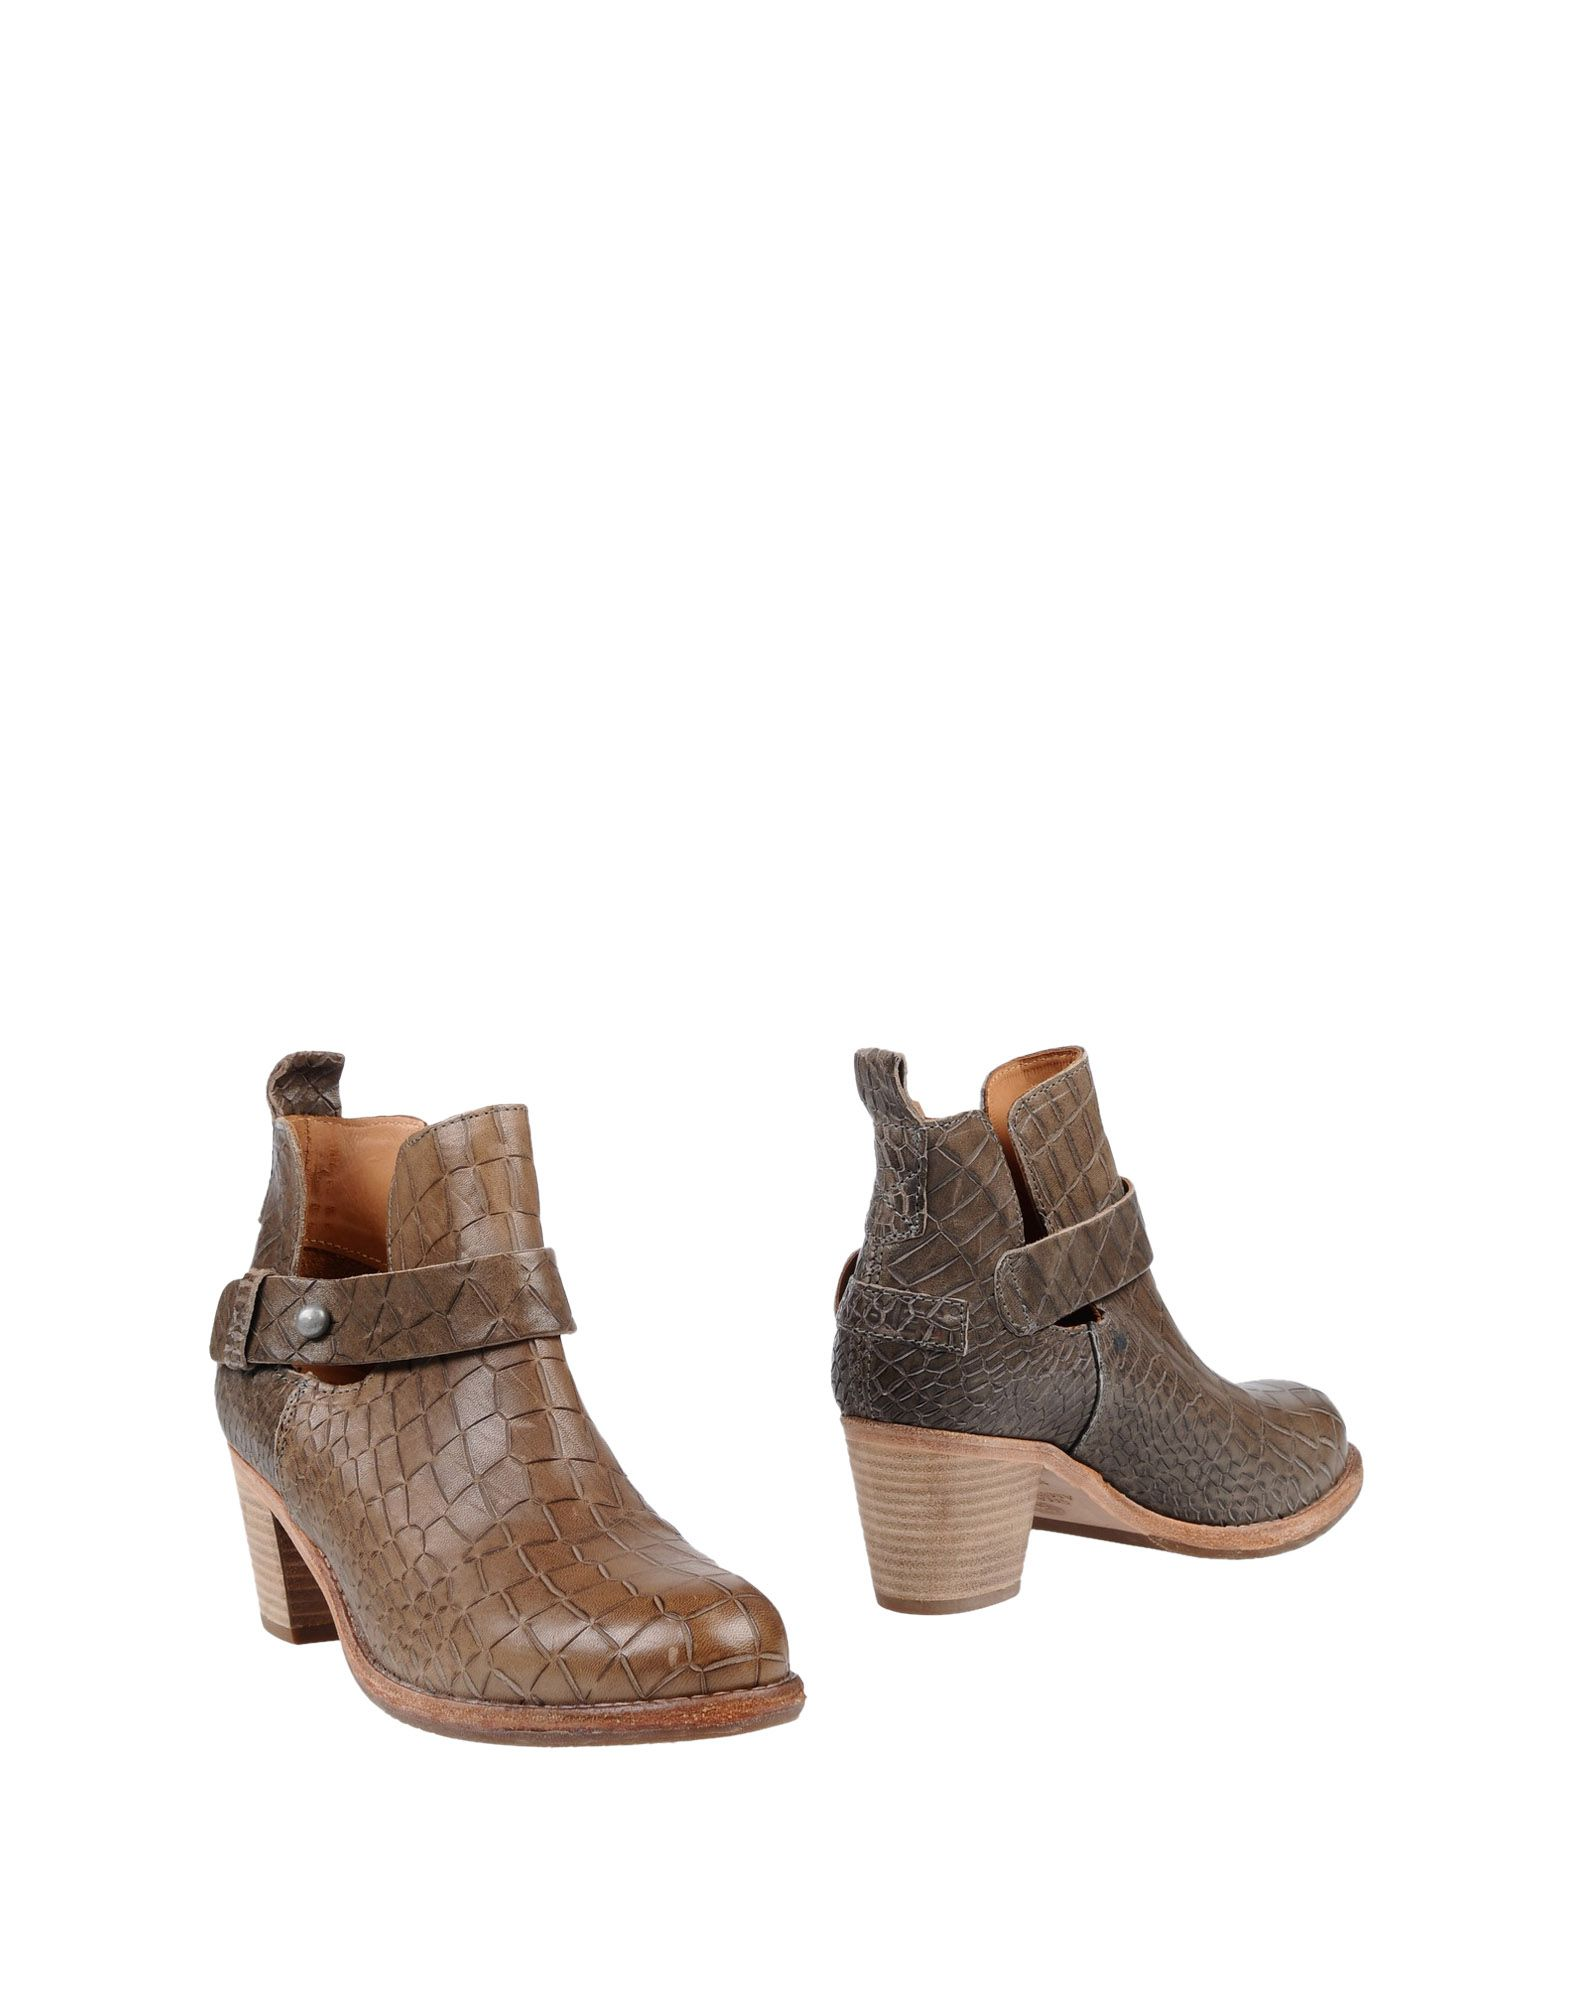 Bottine Shabbies Amsterdam Femme - Bottines Shabbies Amsterdam sur